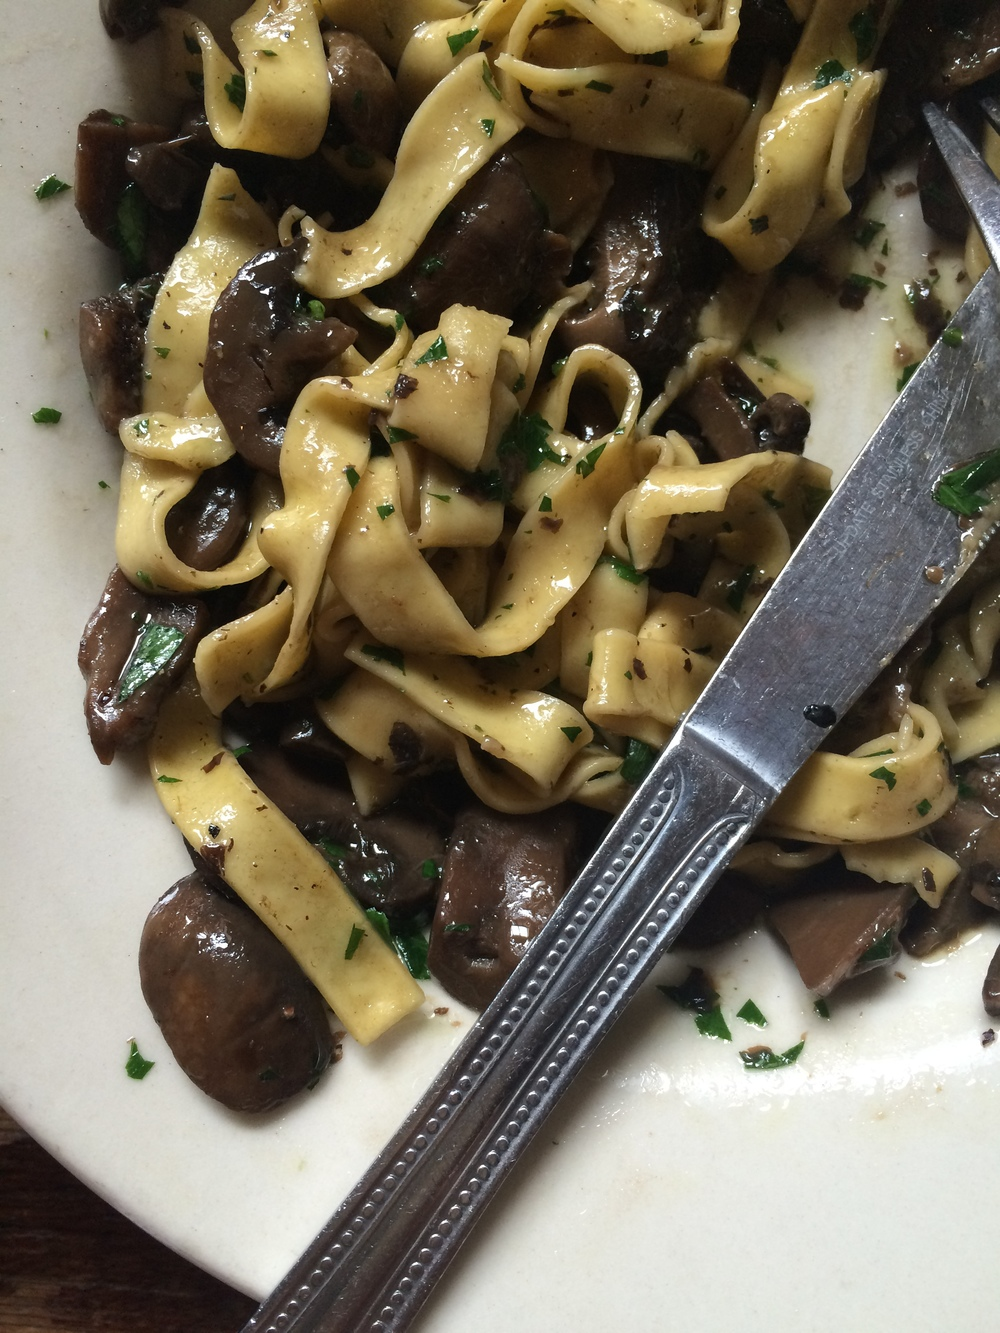 Fettuccineai funghi  from   Mercato   , NYC.